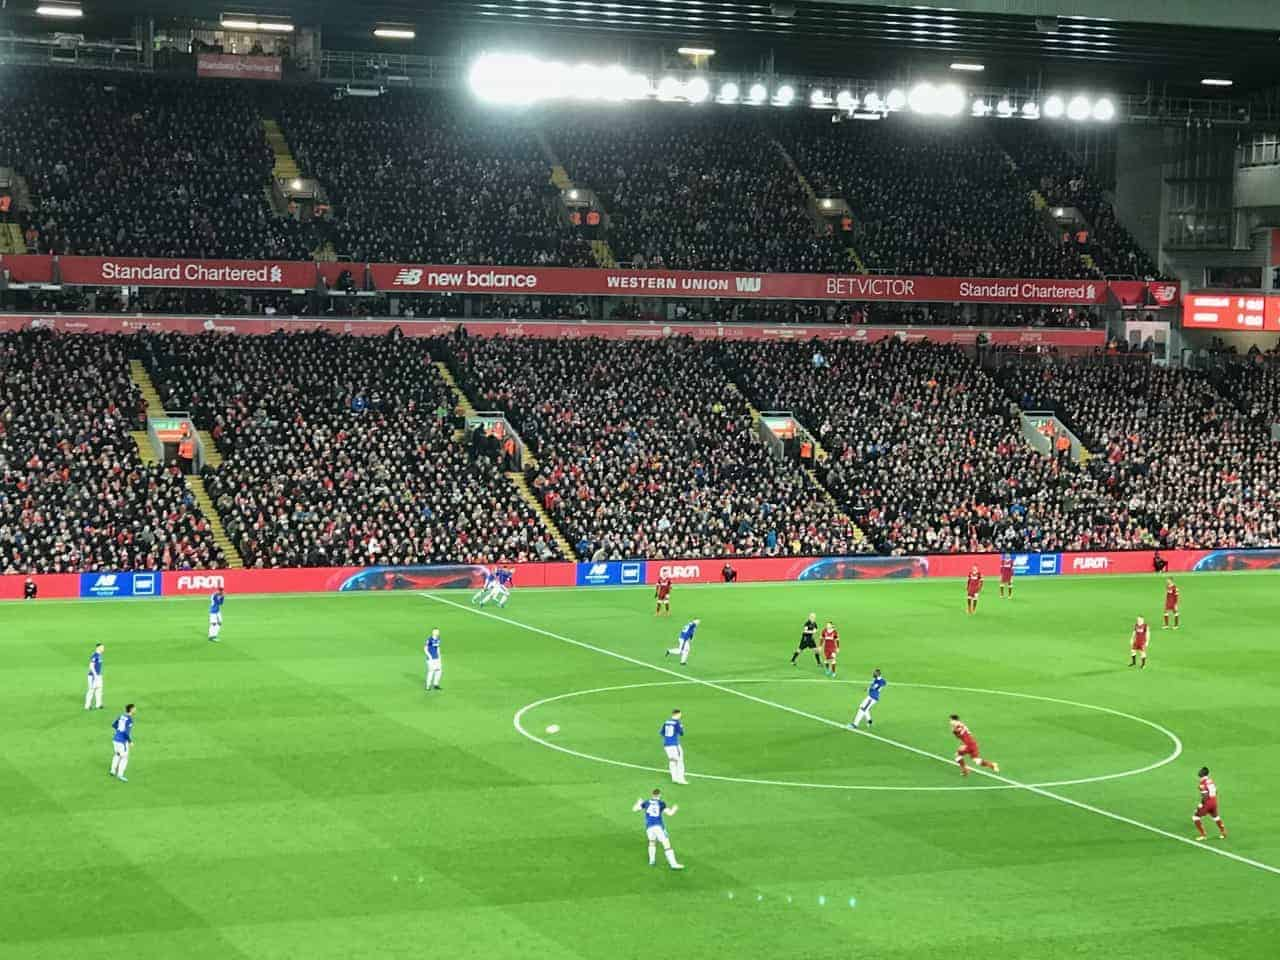 view of players on Liverpool Anfield soccer pitch from hospitality seat